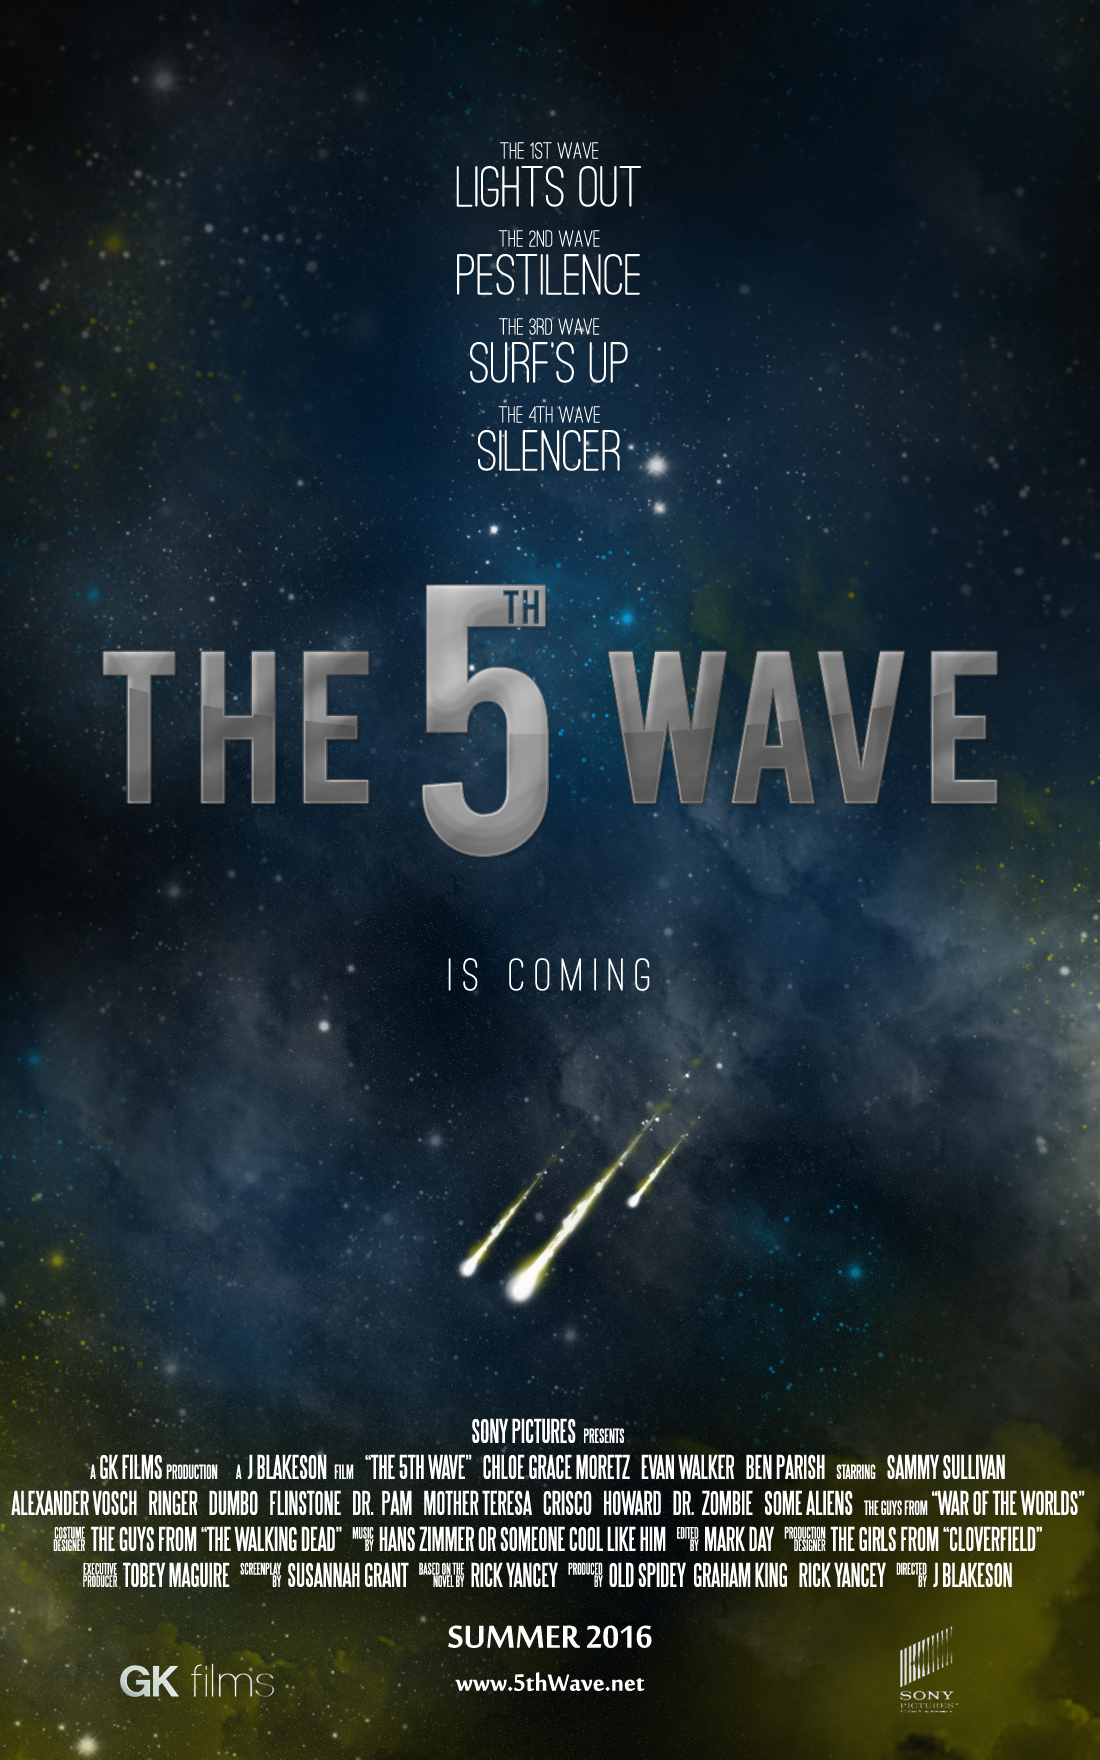 5th-wave-movie-poster.jpg